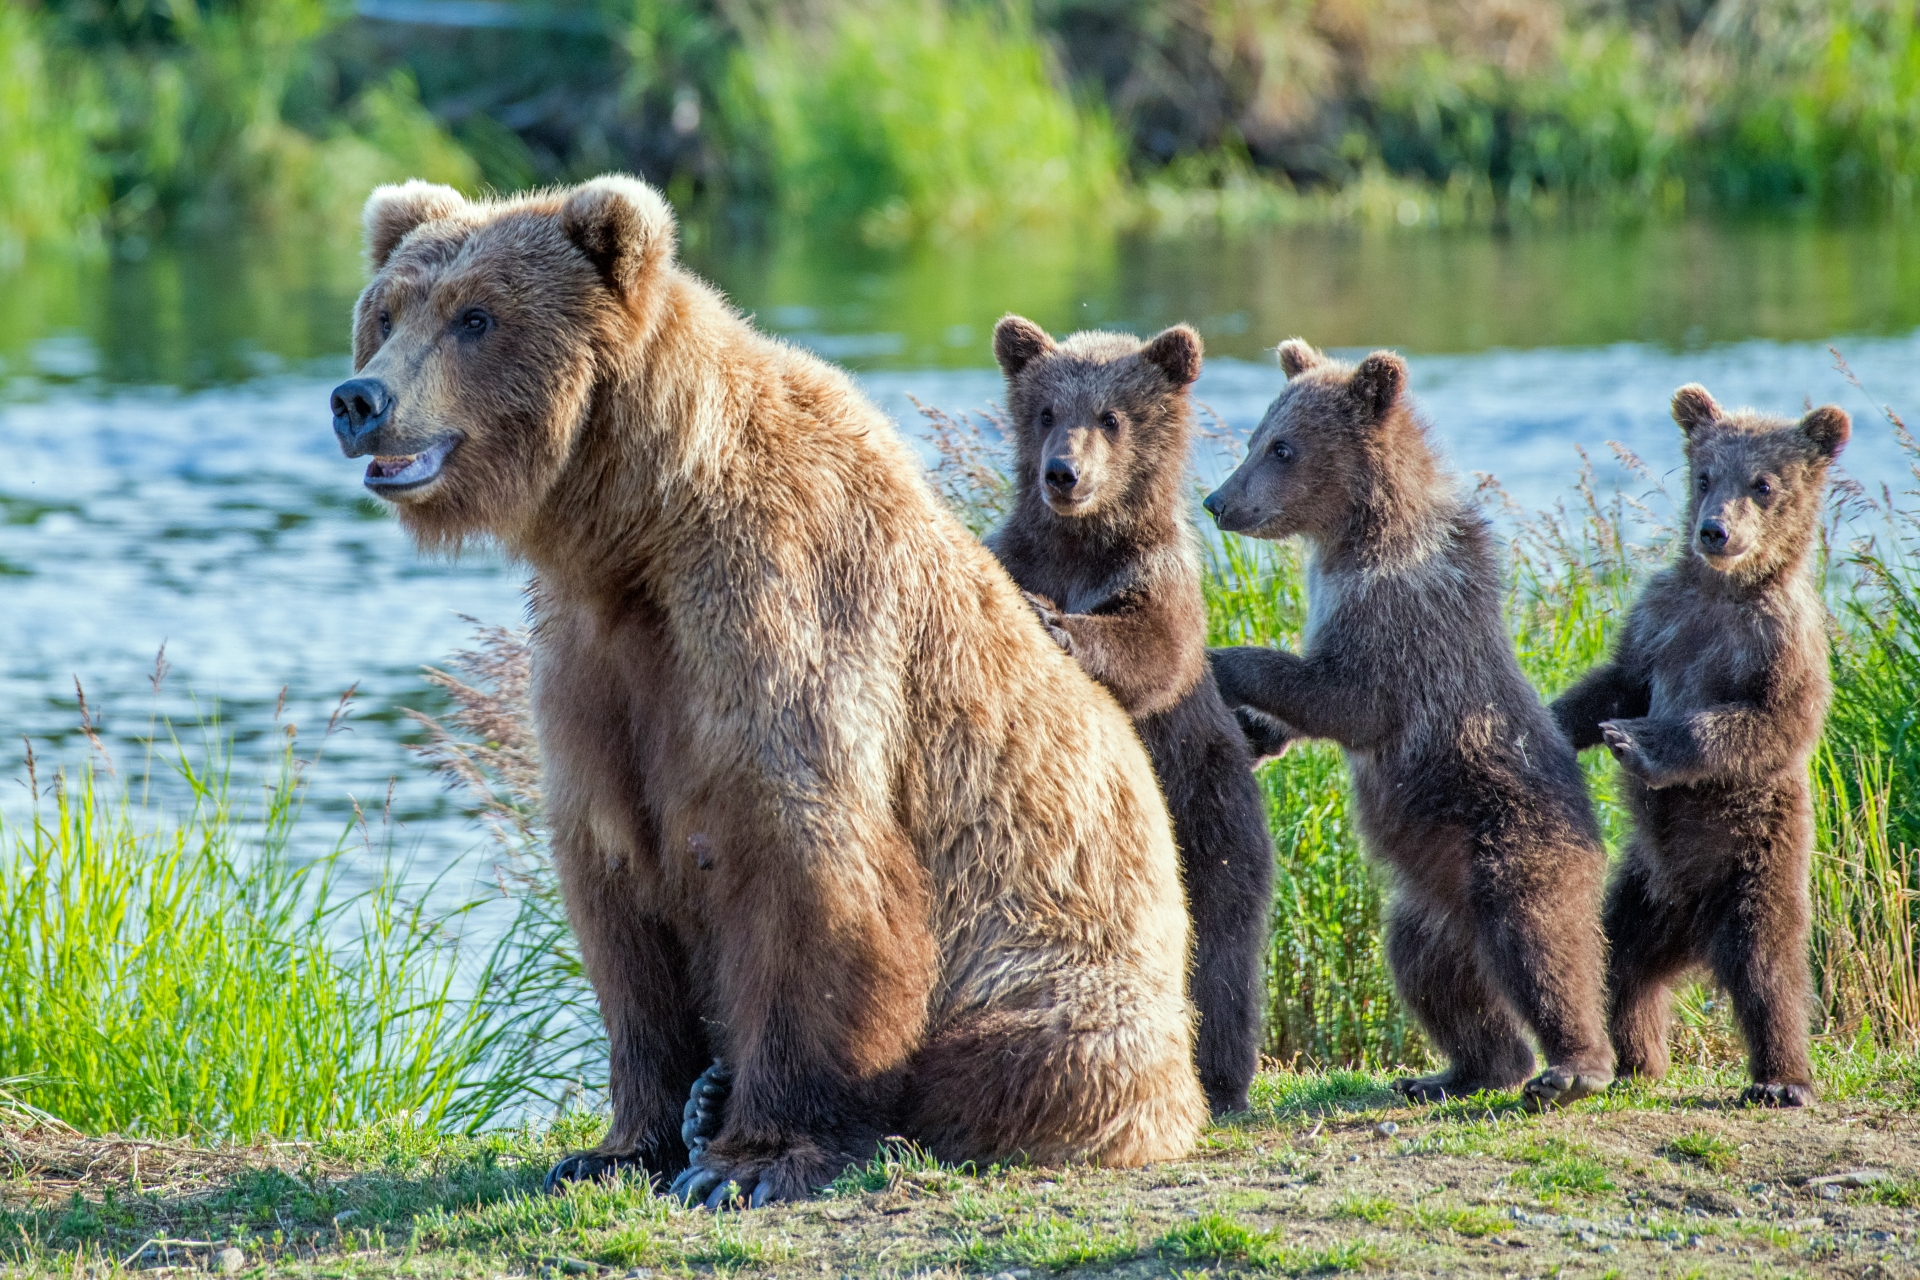 A grizzly bear mother plays with her three cubs